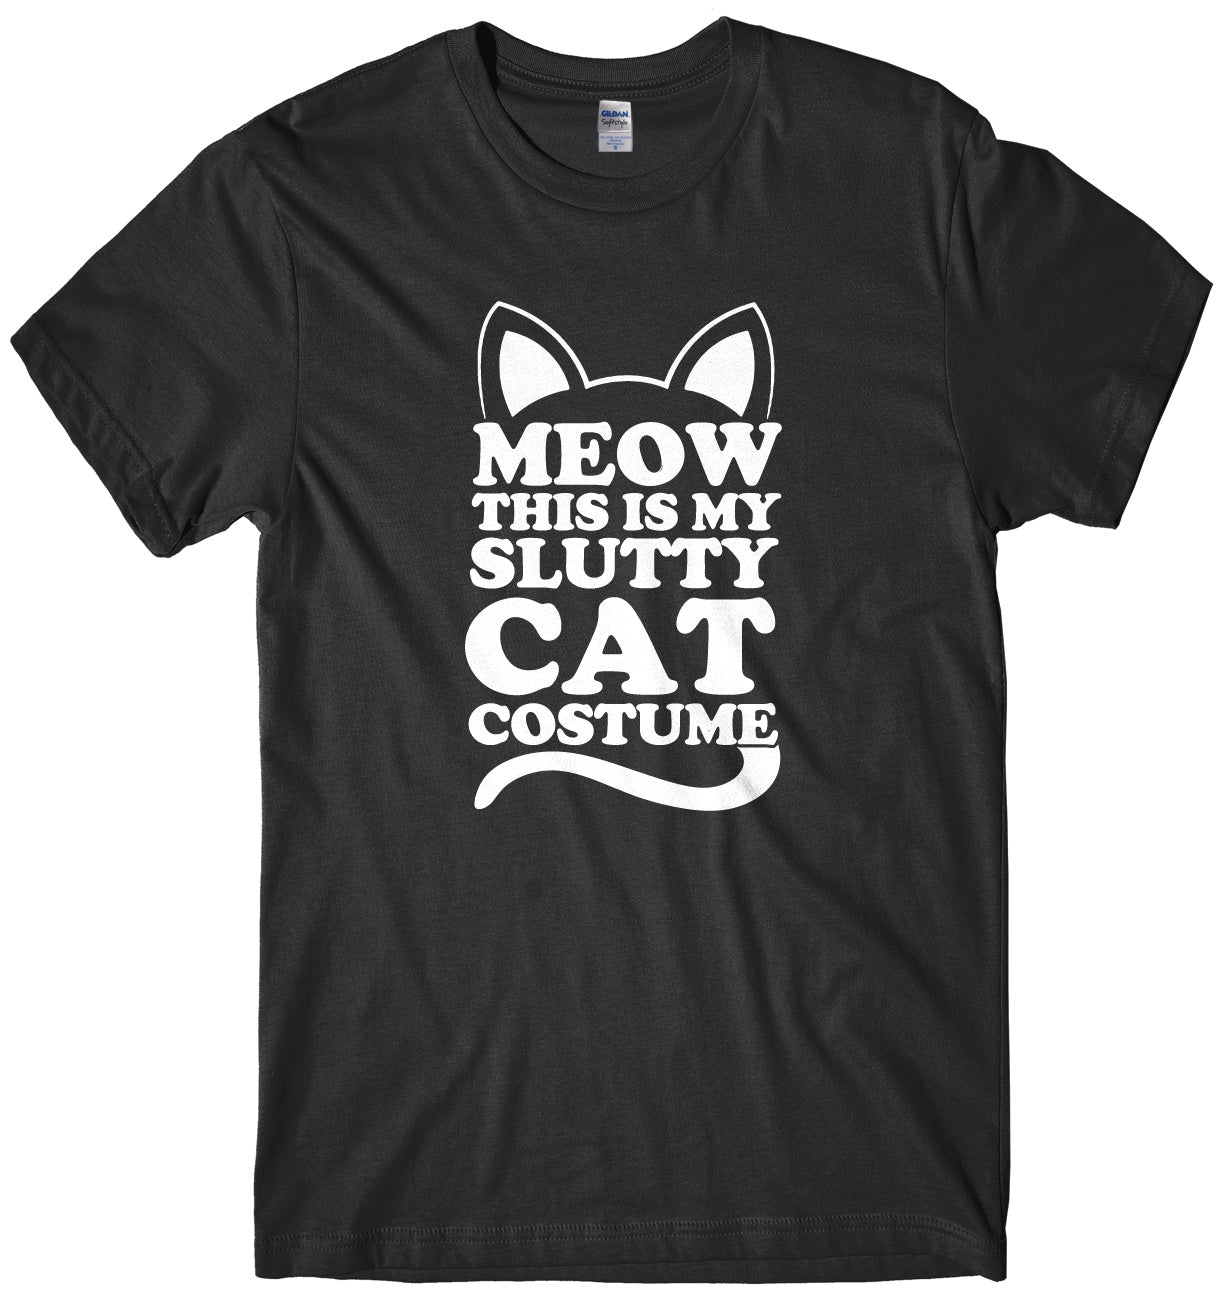 Meow This Is My Slutty Cat Costume Mens Unisex Halloween T-Shirt